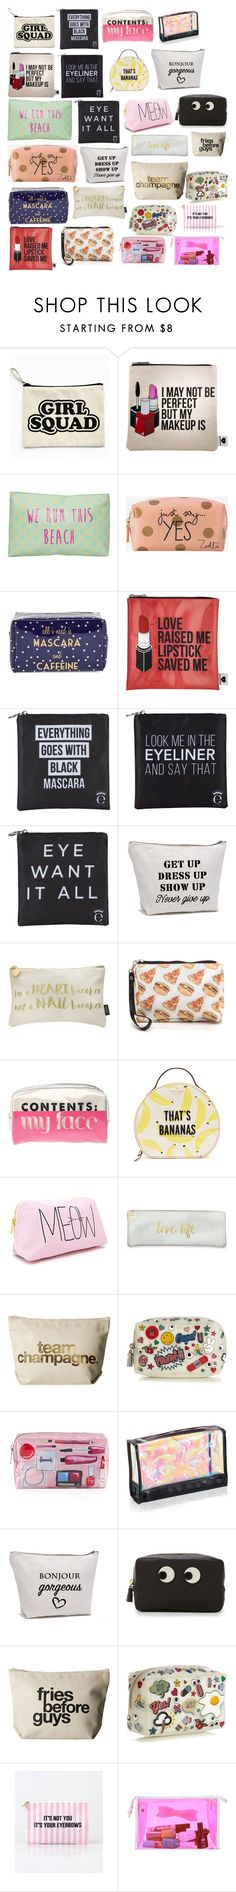 """Cute Makeup Bags"" by terminally-chill ❤ liked on Polyvore featuring Sephora Collection, T-shirt & Jeans, Zoella Beauty, Tri-coastal Design, Eyeko, Nails Inc., Kate Spade, Forever 21, Fringe and Dogeared"